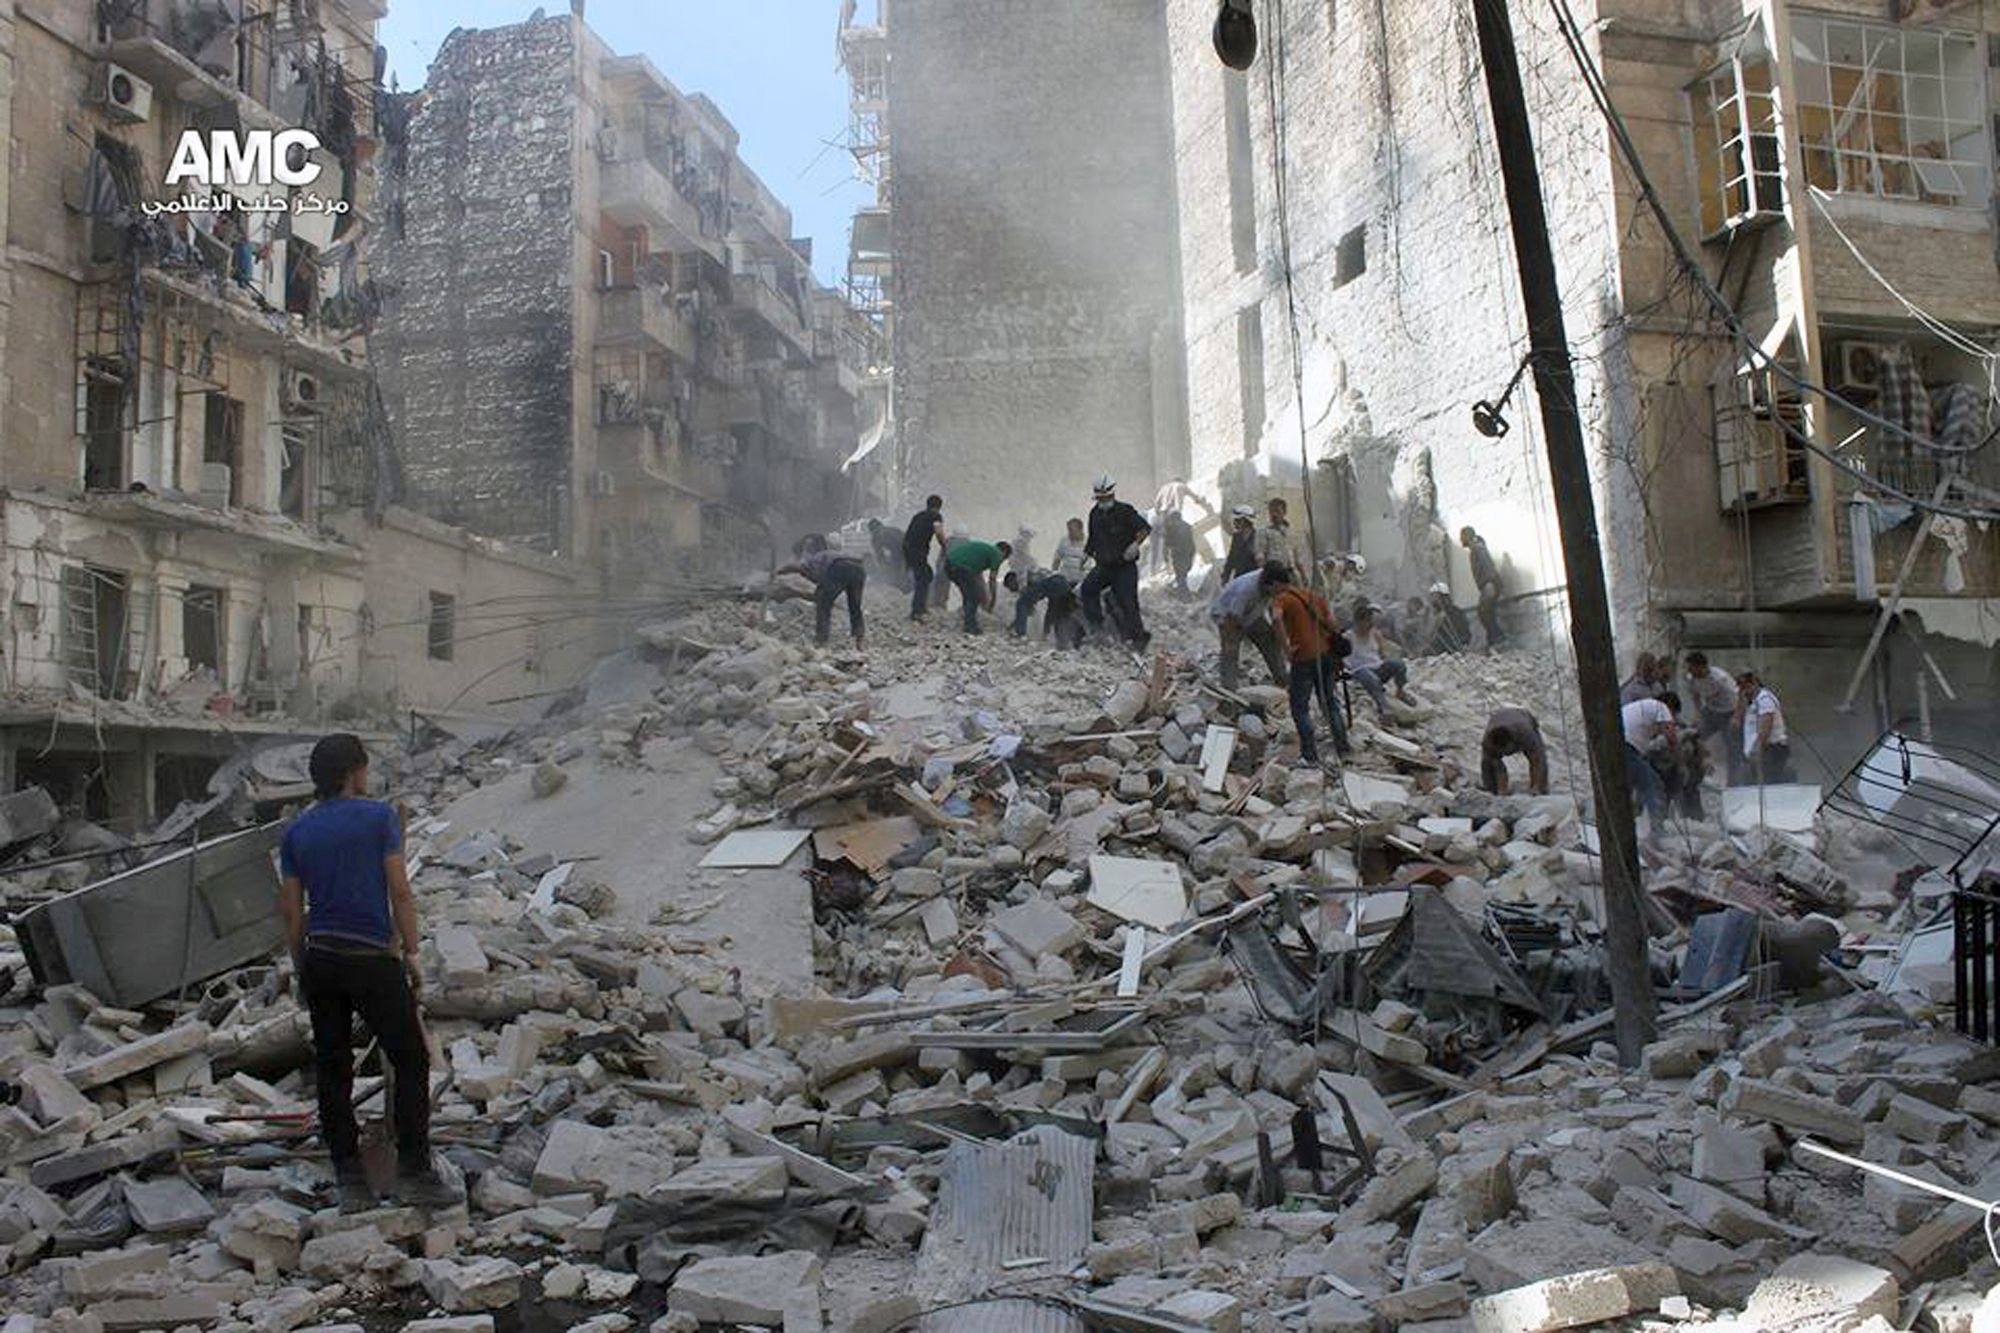 Damage caused by fighting in Syria